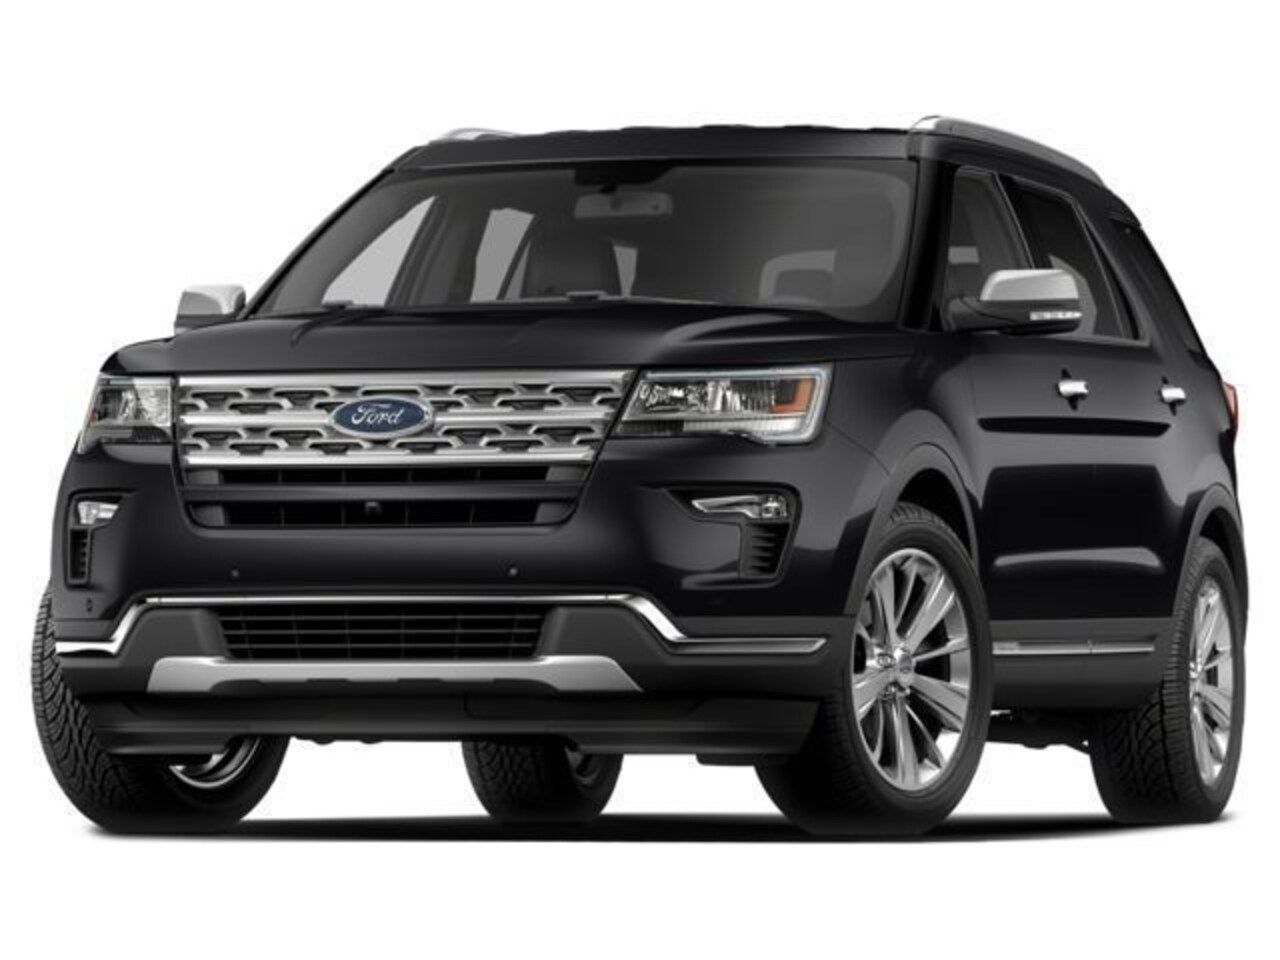 2018 Ford Explorer XLT 202A 4WD ROOF APPEARANCE TECH SUV